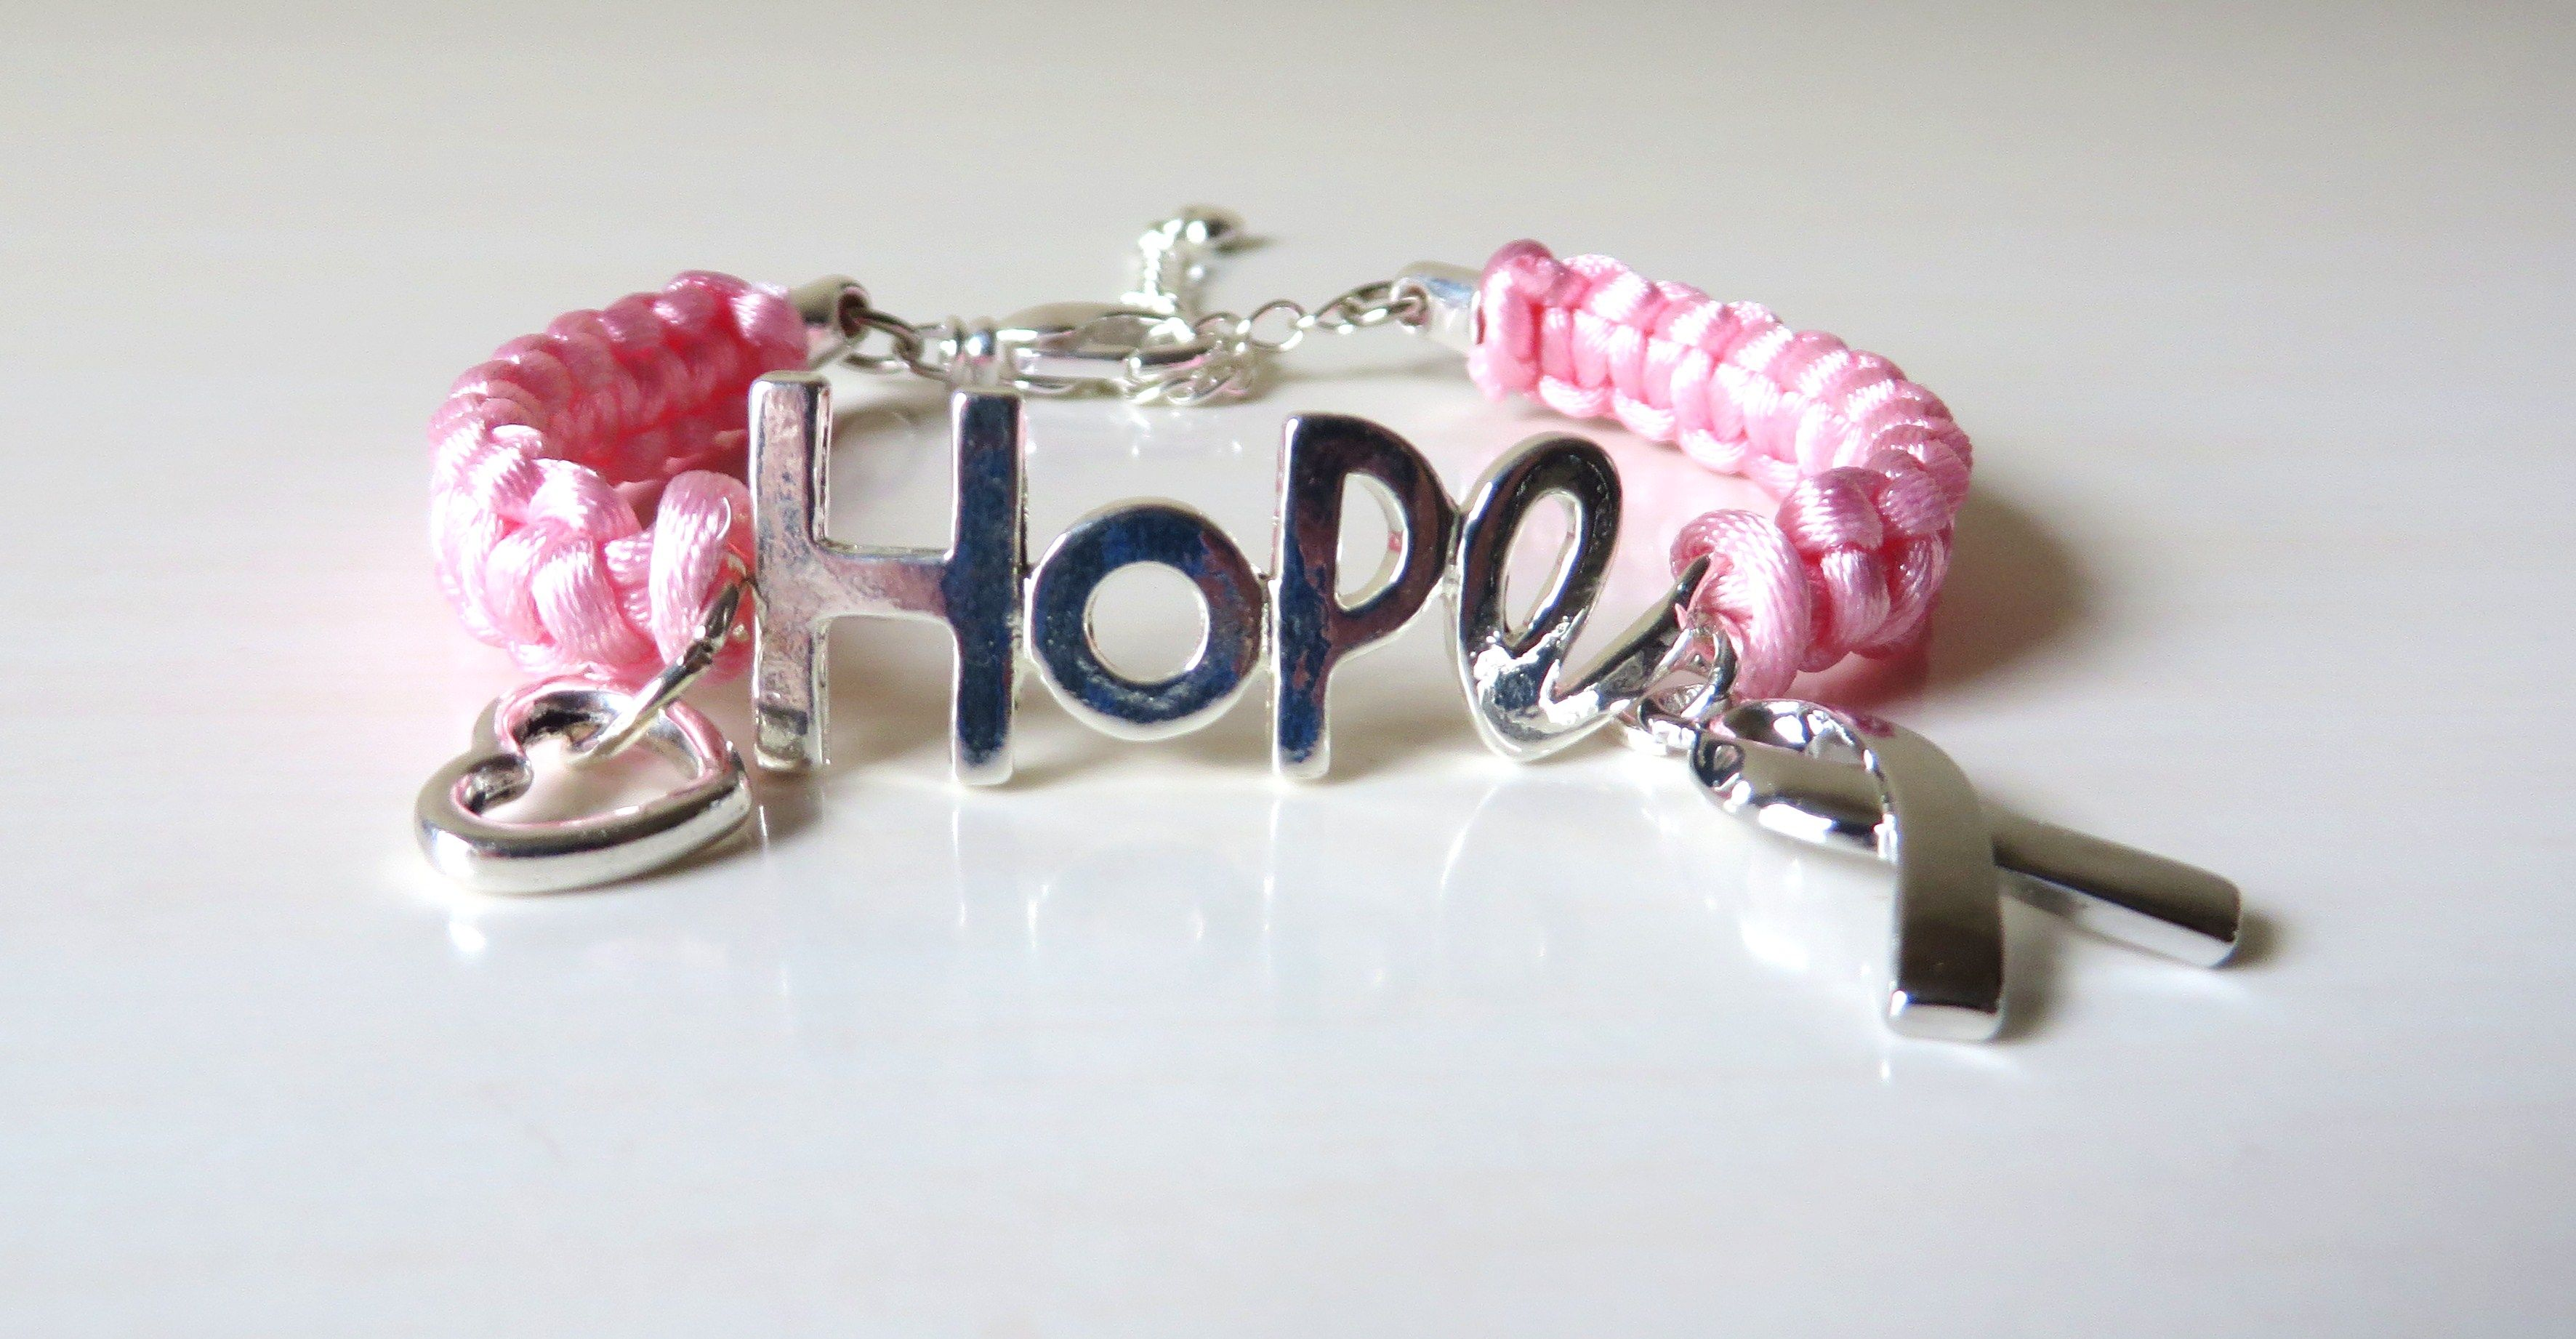 """Pinkk Satin Cord is macramed onto both sides of a """"Hope"""" Bracelet Bar.  Silver-colored Awareness Ribbon Charm and Floating Heart Charm are attached. www.etsy.com/shop/jewelrydesigned4you"""